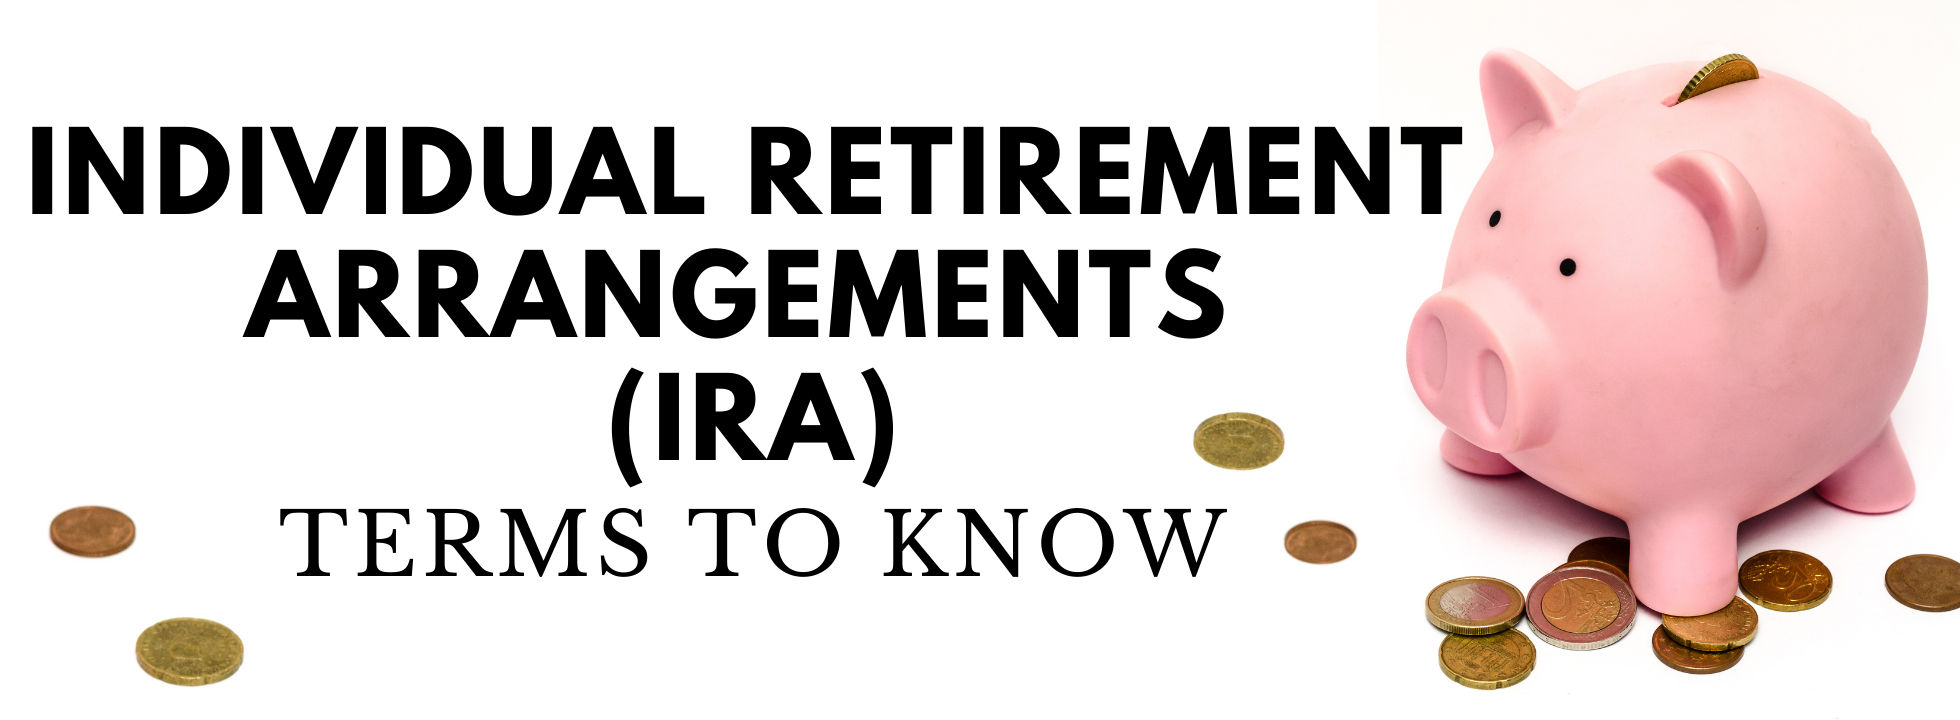 Individual Retirement Arrangements